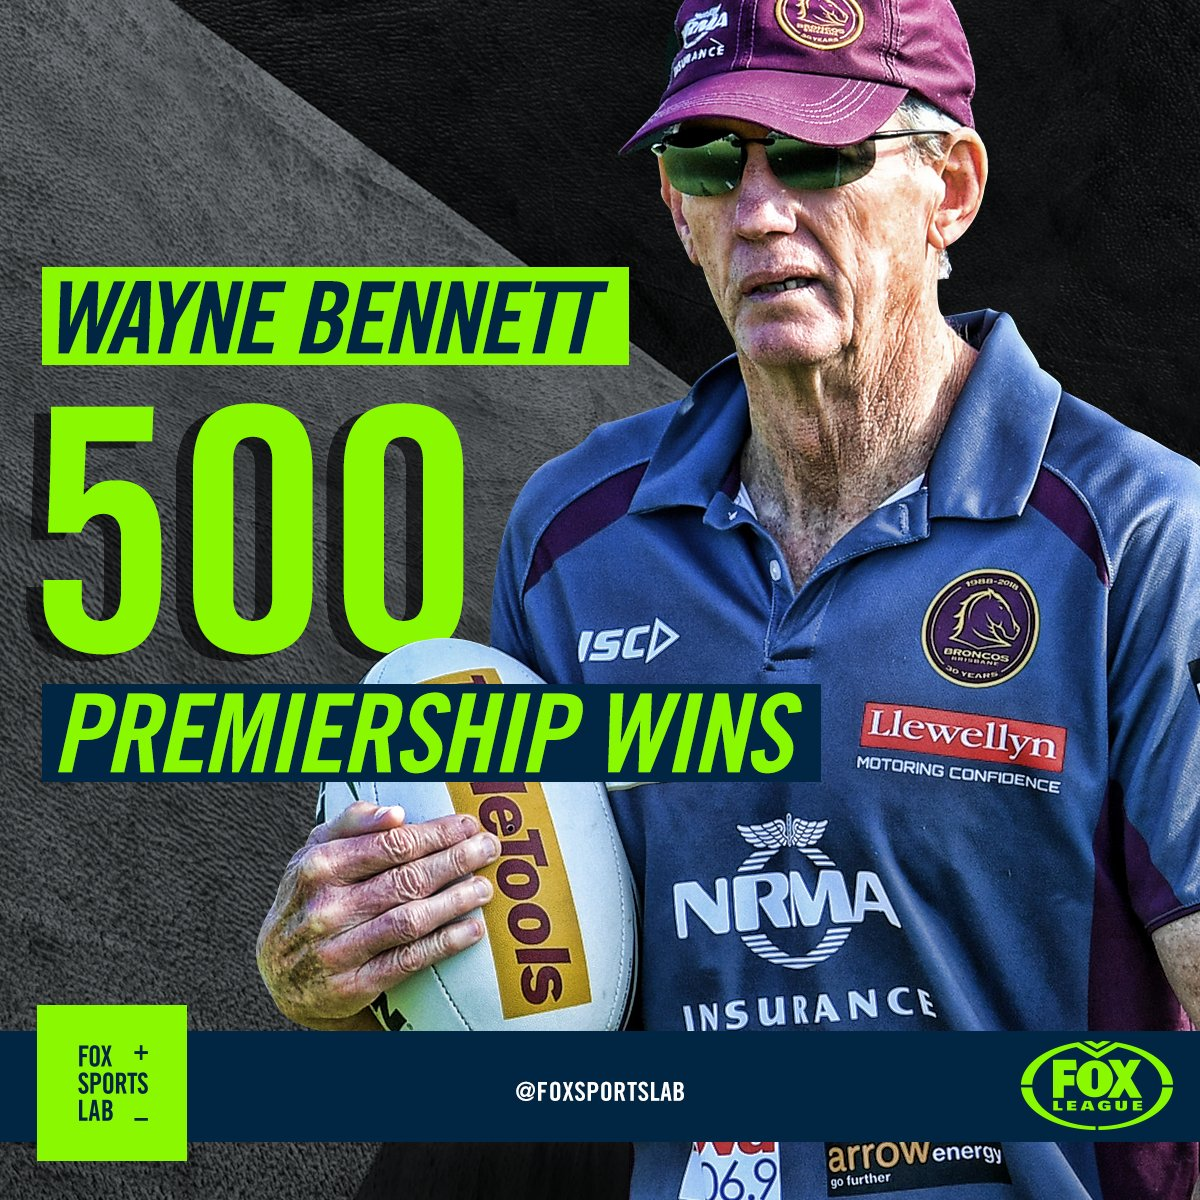 Congratulations to Wayne Bennett on his 500th win as coach in what was his 806th match. Only 34 current players were born when Bennett won his first match, including just two current Broncos (Sam Thaiday, Sam Tagataese). #NRLBroncosPanthers #Bronxnation #500